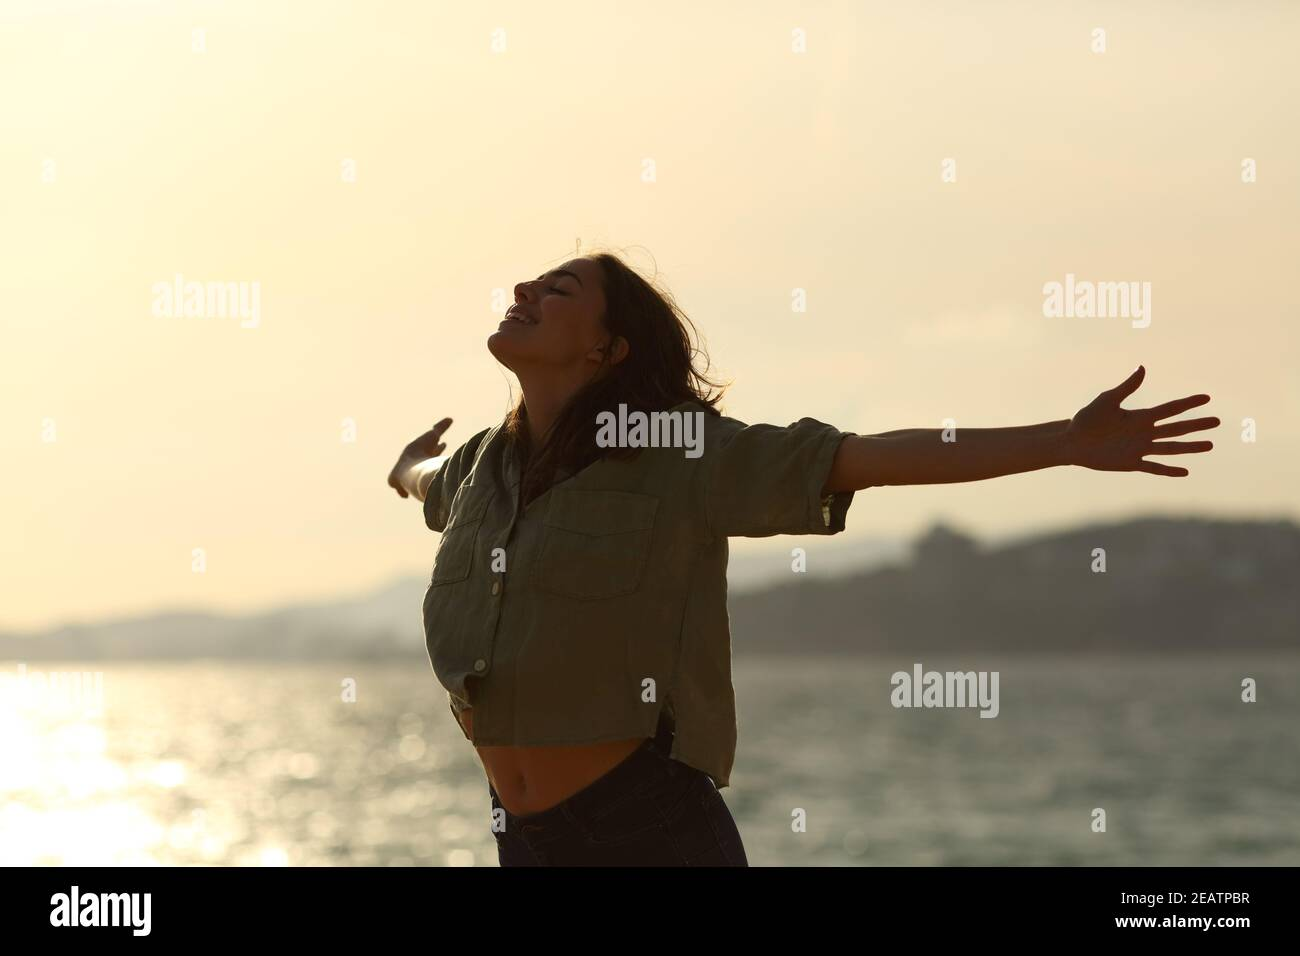 Silhouette of excited woman stretching arms on the beach Stock Photo